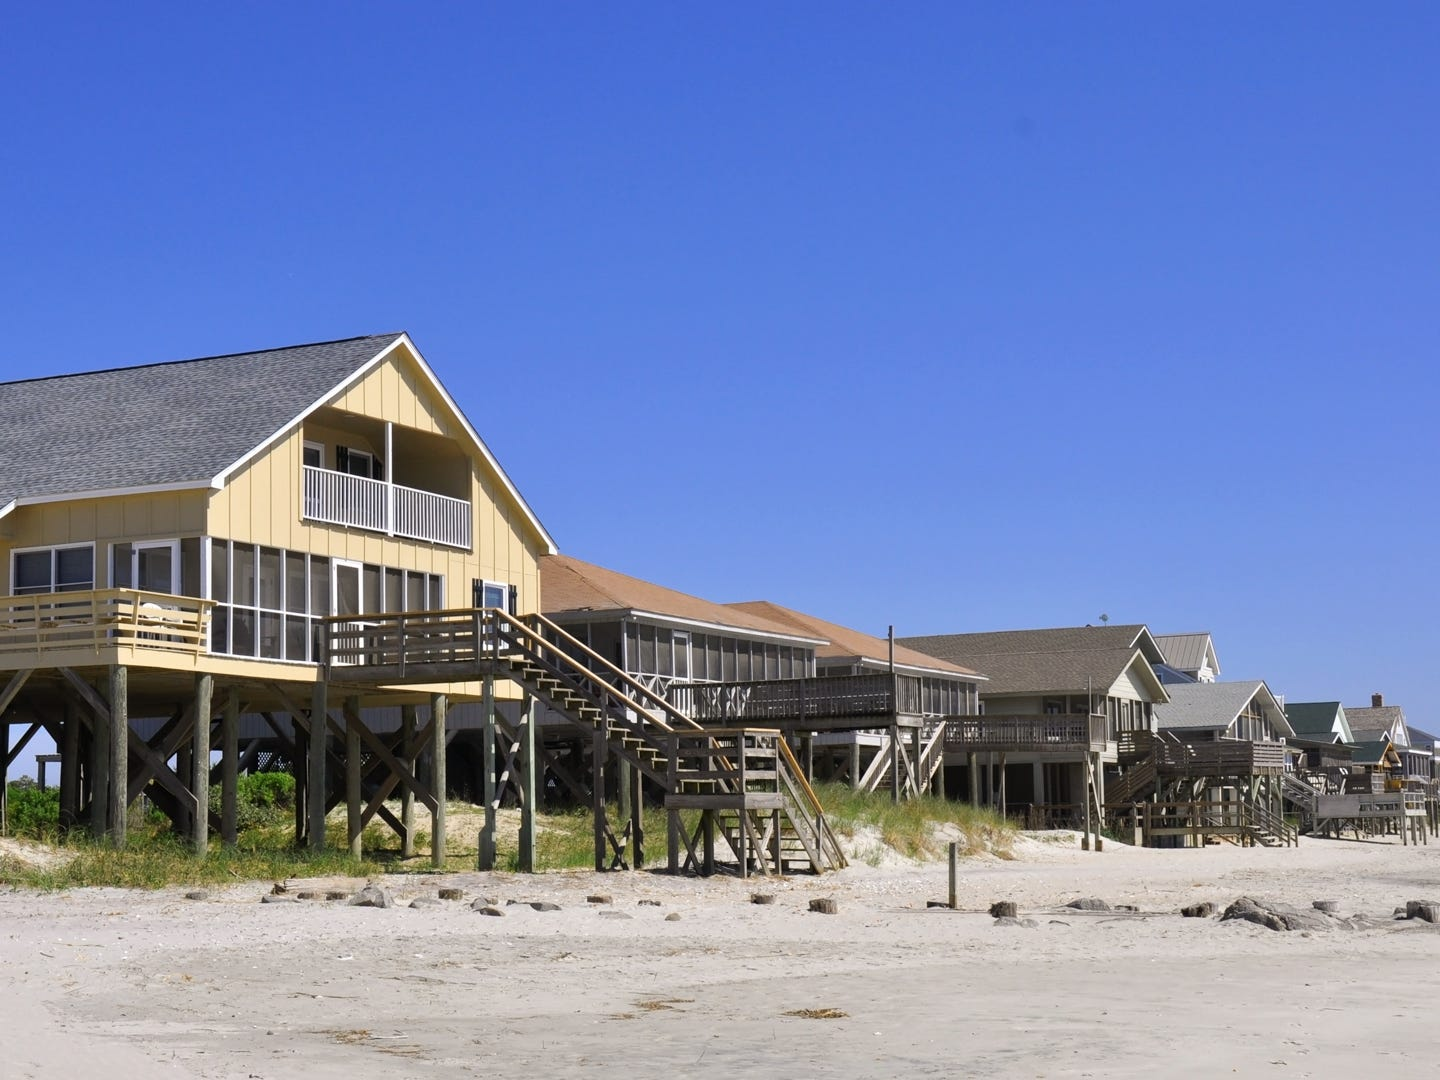 South Carolina: The picturesque seaside town of Pawleys Island is best known for its signature Cypress cottages. There's plenty of history and untouched beaches here, but also lots of attractions to keep you busy whether you want to shop, dine, play outdoors or just relax. Go dolphin-spotting on a Blue Wave Adventures dolphin tour, get a taste of the island's history at the Hopsewee Plantation, or catch a show at the Carolina Opry. If you'll be flying in, consider checking for deals on Twitter. It's one of the best ways to save money for your vacation. Blue Wave Adventures Dolphin Tour: $31.